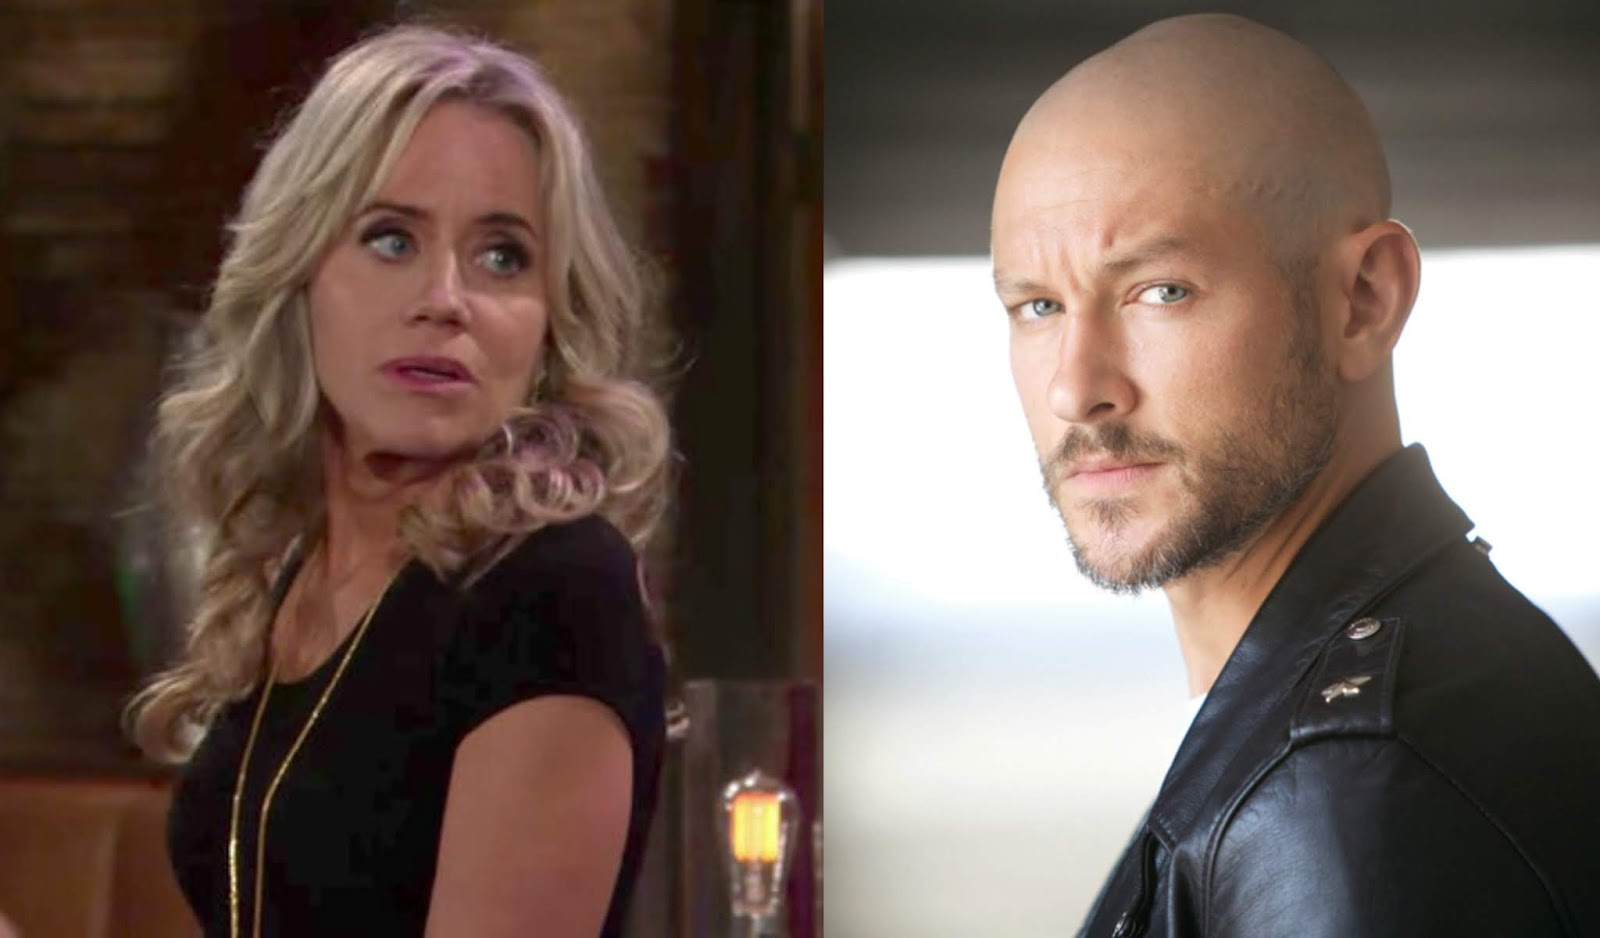 Y R Alums Michael Graziadei And Tamara Clatterbuck Guest Star On All Rise Details Here Soap Opera News